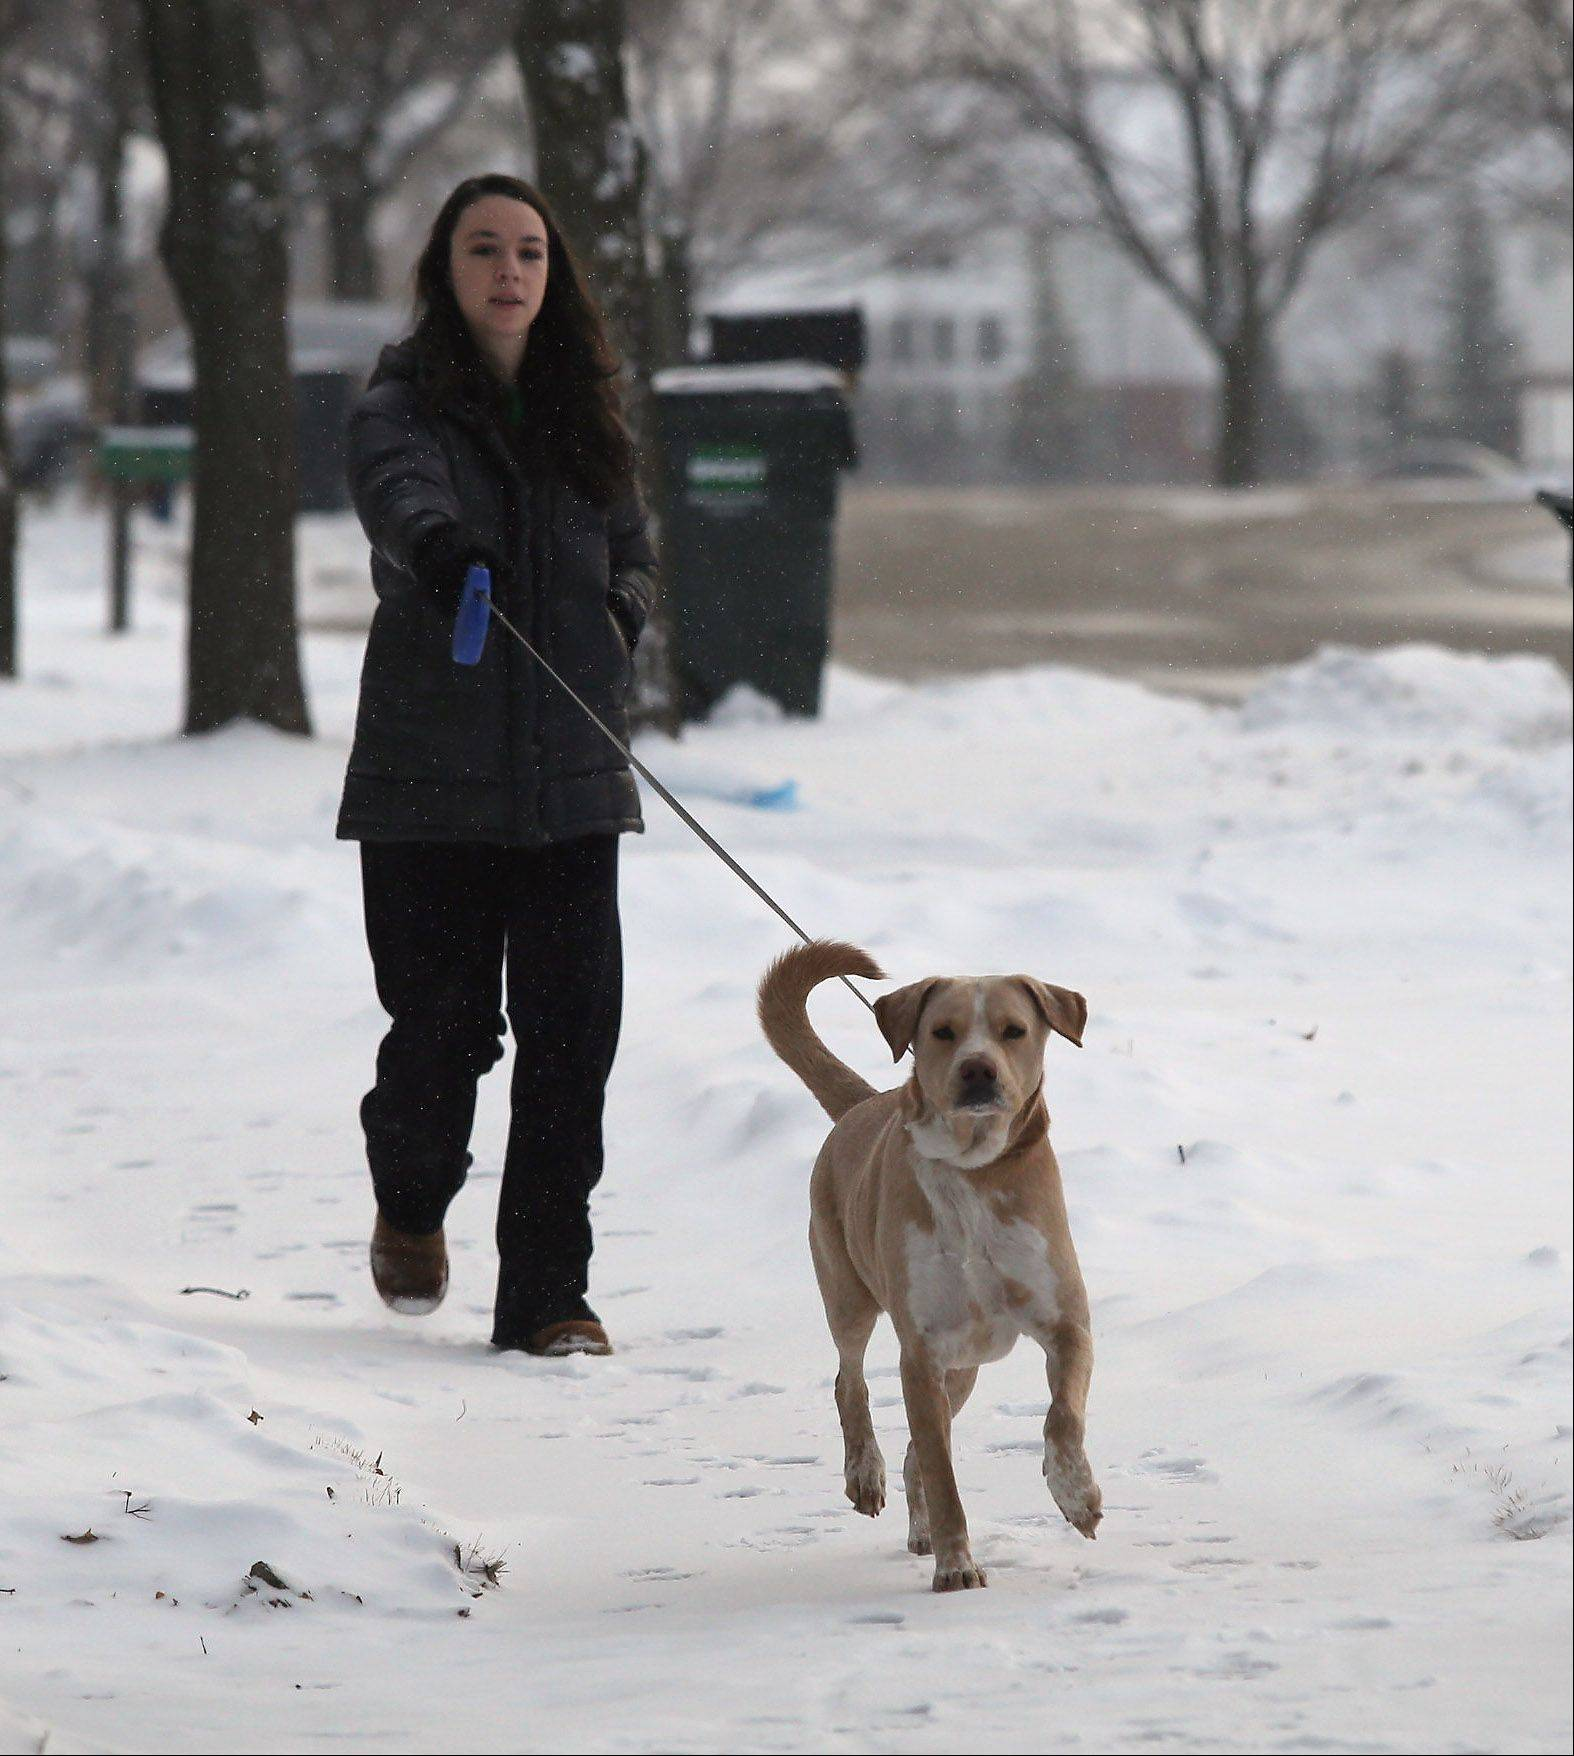 Mundelein resident Michele Mazza, 17, walks her dog, Cubbie, on snow-covered sidewalks as snow fell in Lake County Wednesday. Snow plows were out in force clearing streets during the early morning hours to help with commuter traffic.